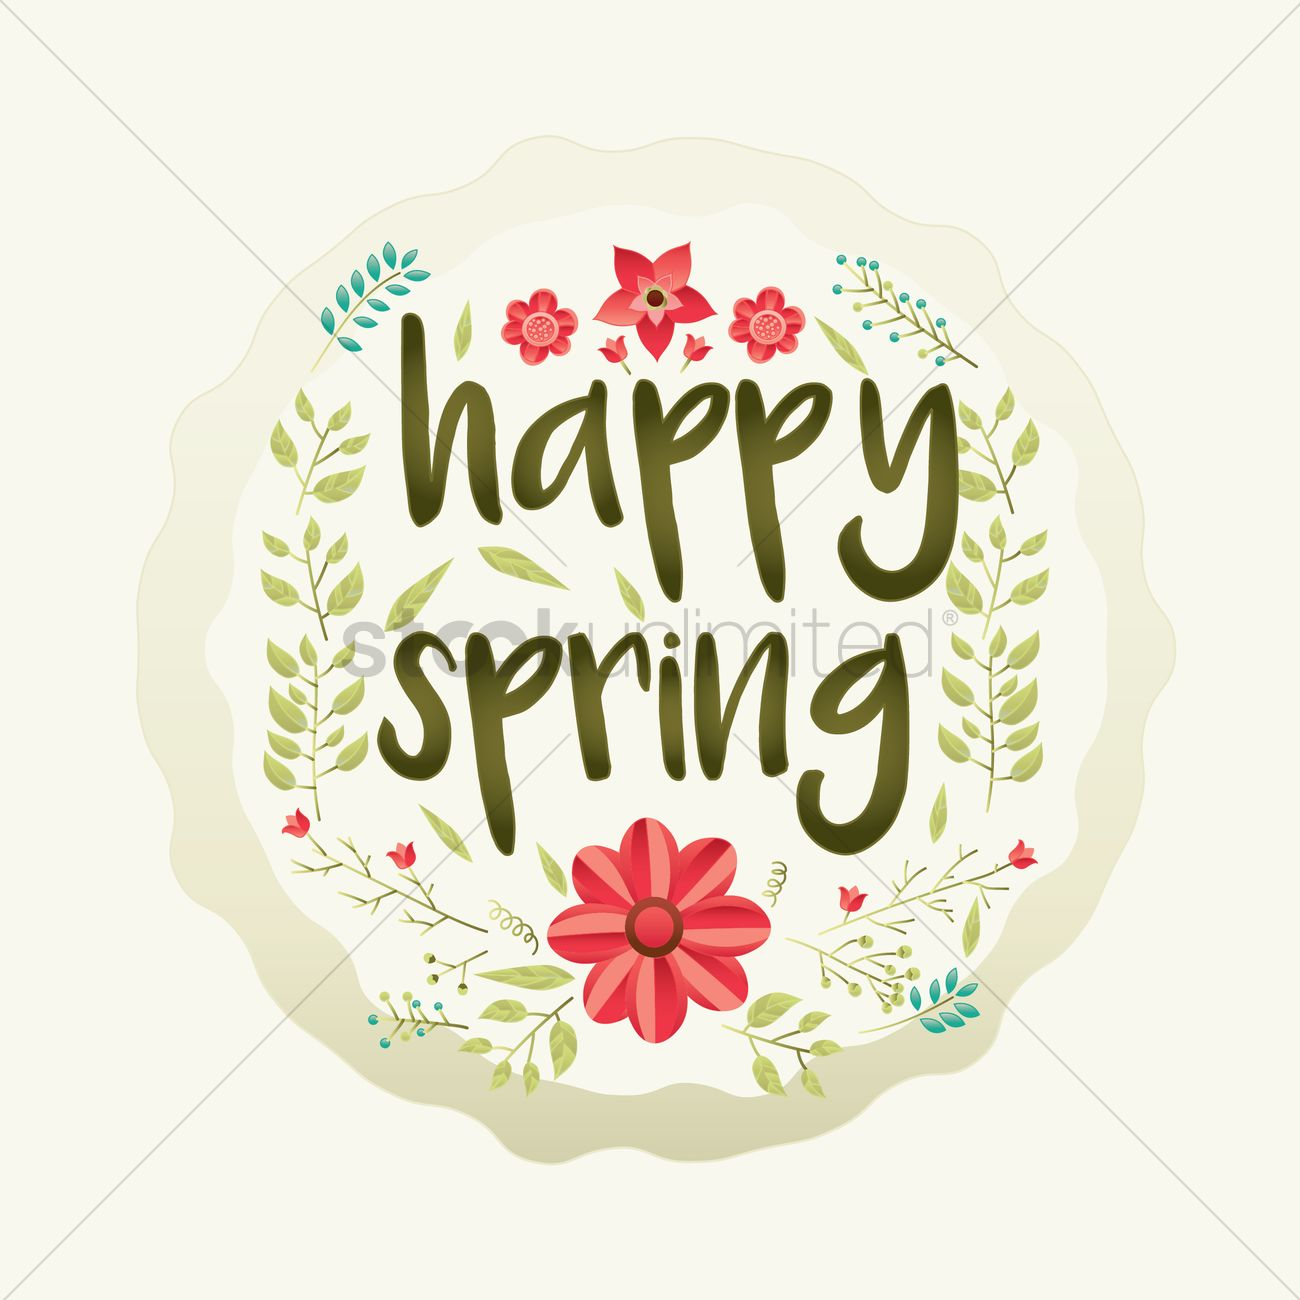 Happy Spring Card Design Vector Graphic